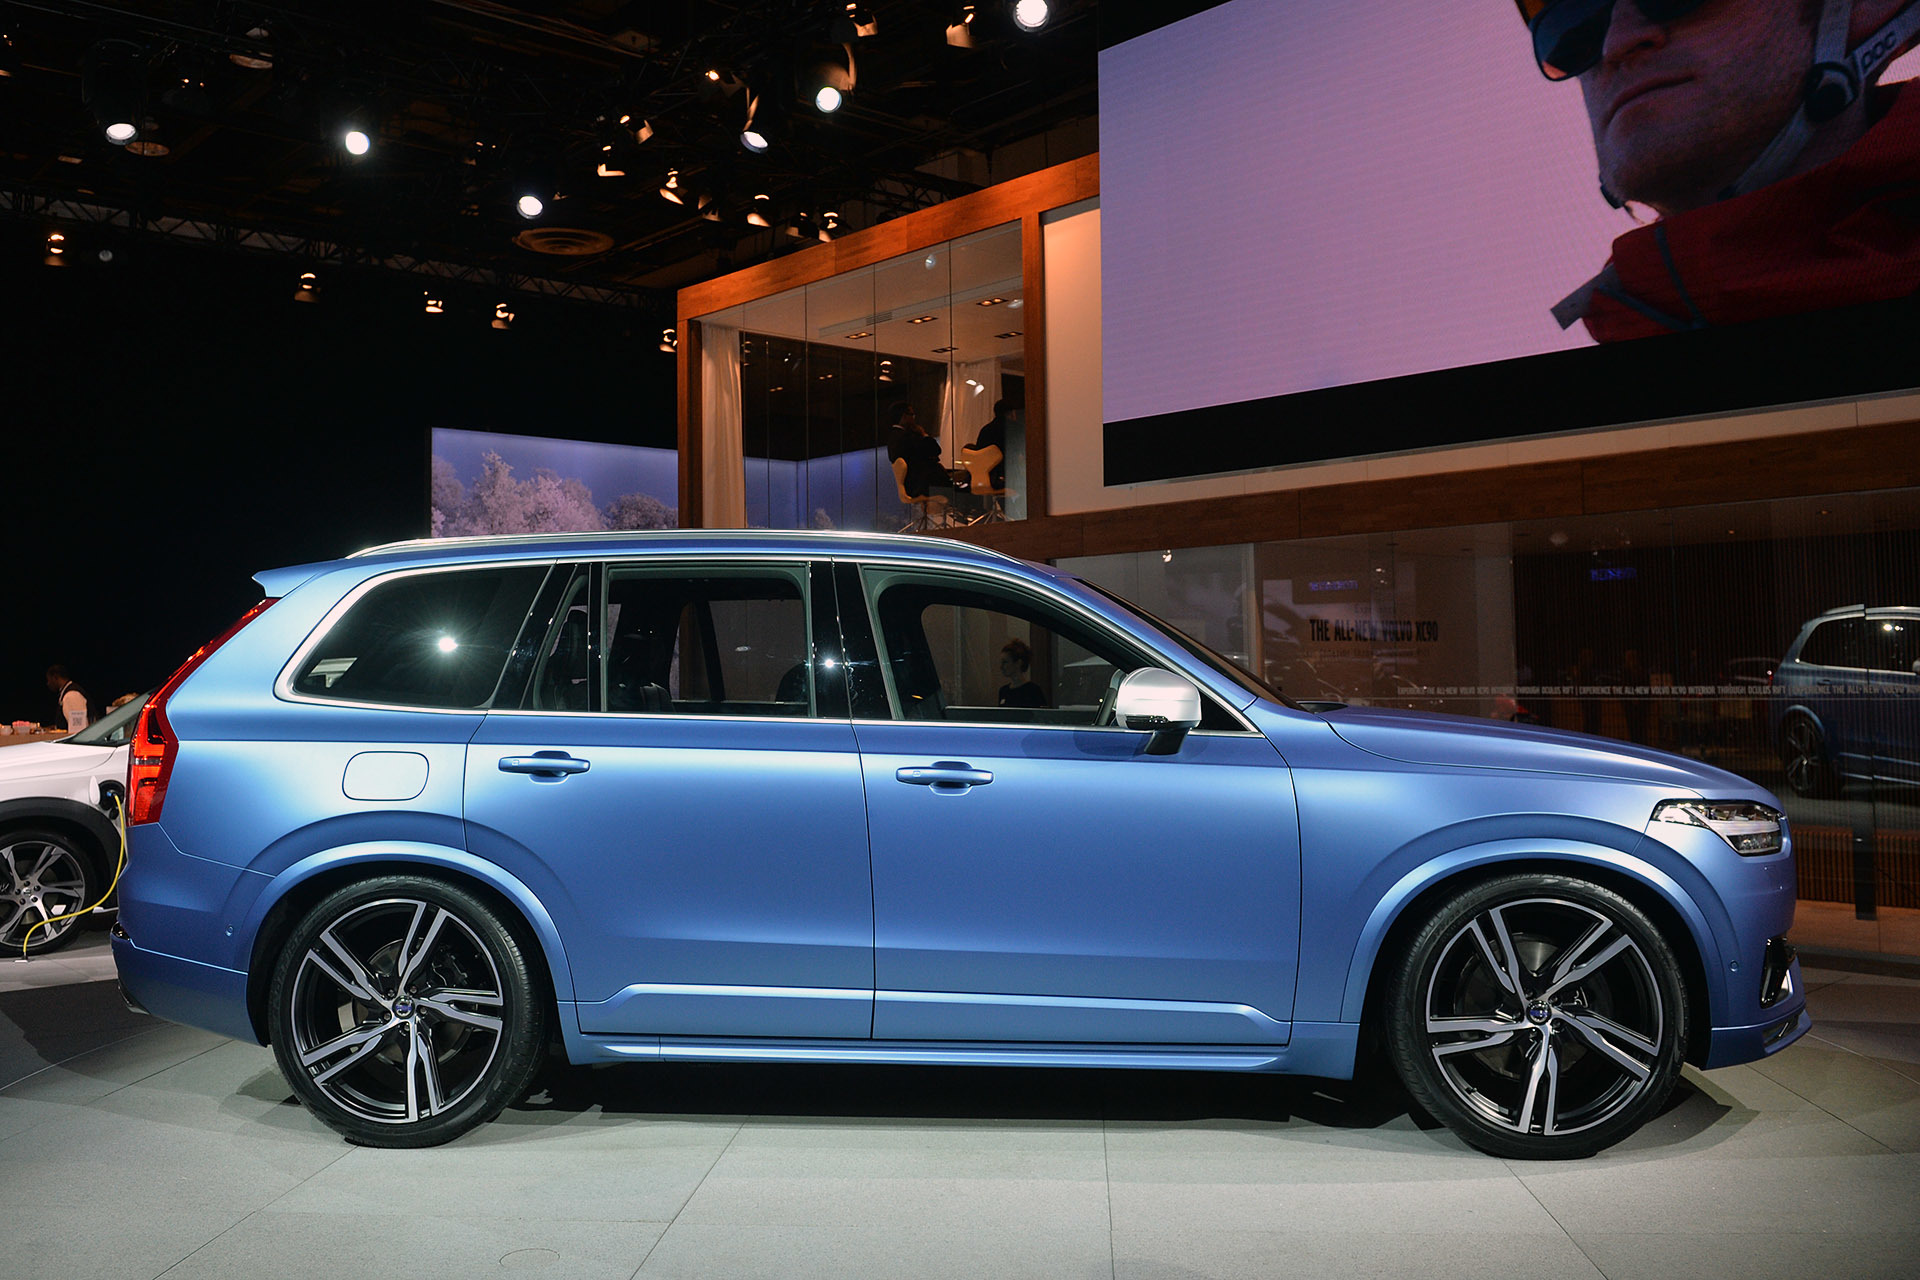 2015 volvo xc90 r design detroit 2015 photo gallery autoblog. Black Bedroom Furniture Sets. Home Design Ideas